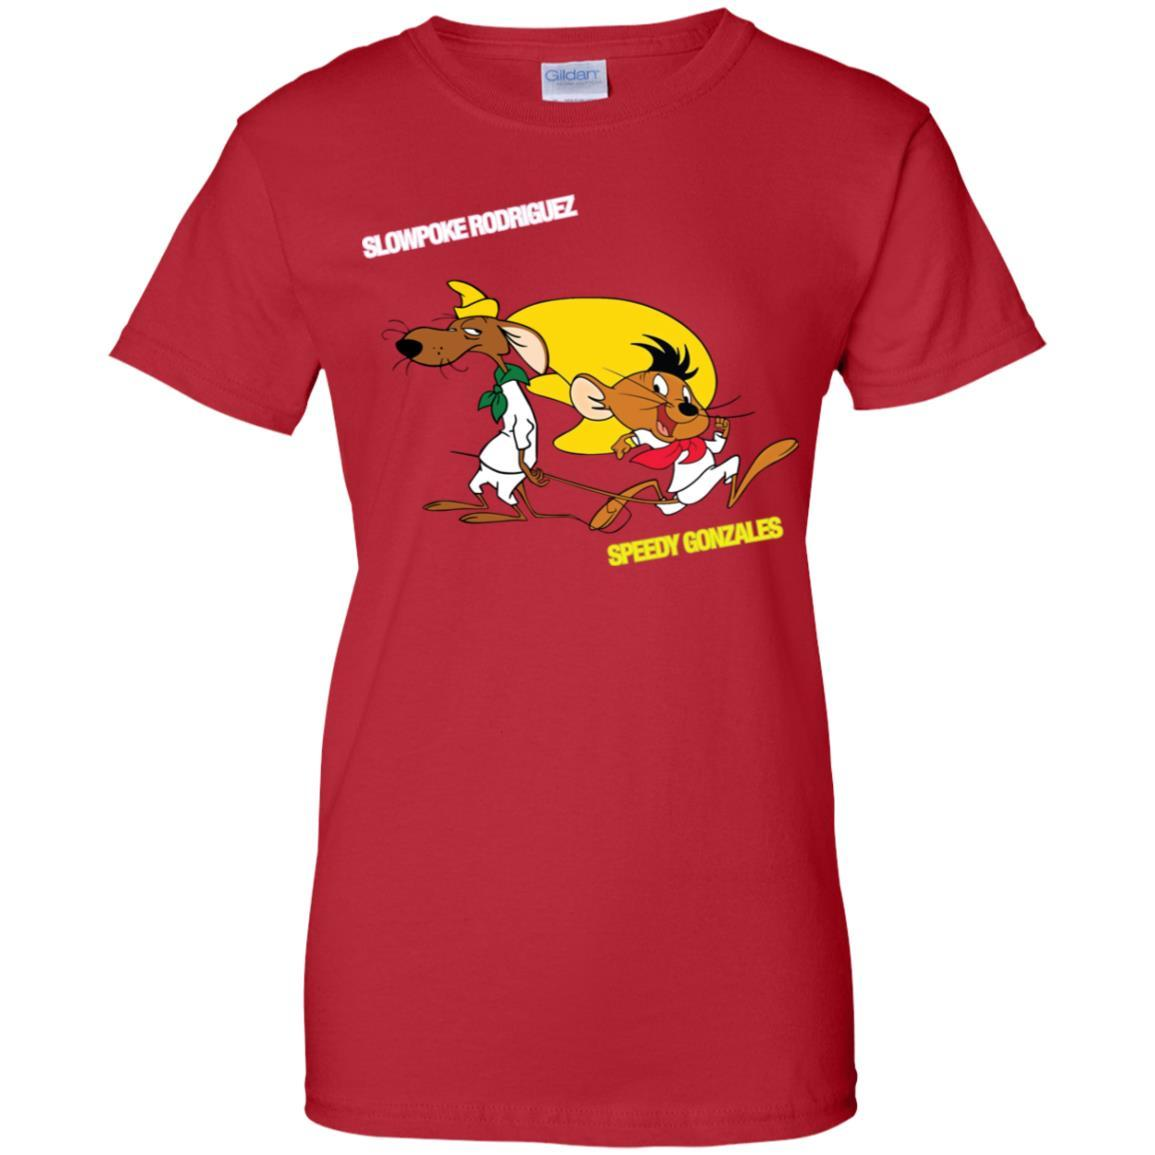 Slowpoke Rodriguez Speedy Gonzalez Funny Vintage Cartoon Tee T-Shirt G200L Gildan Ladies' 100% Cotton T-Shirt / Red / 3XL